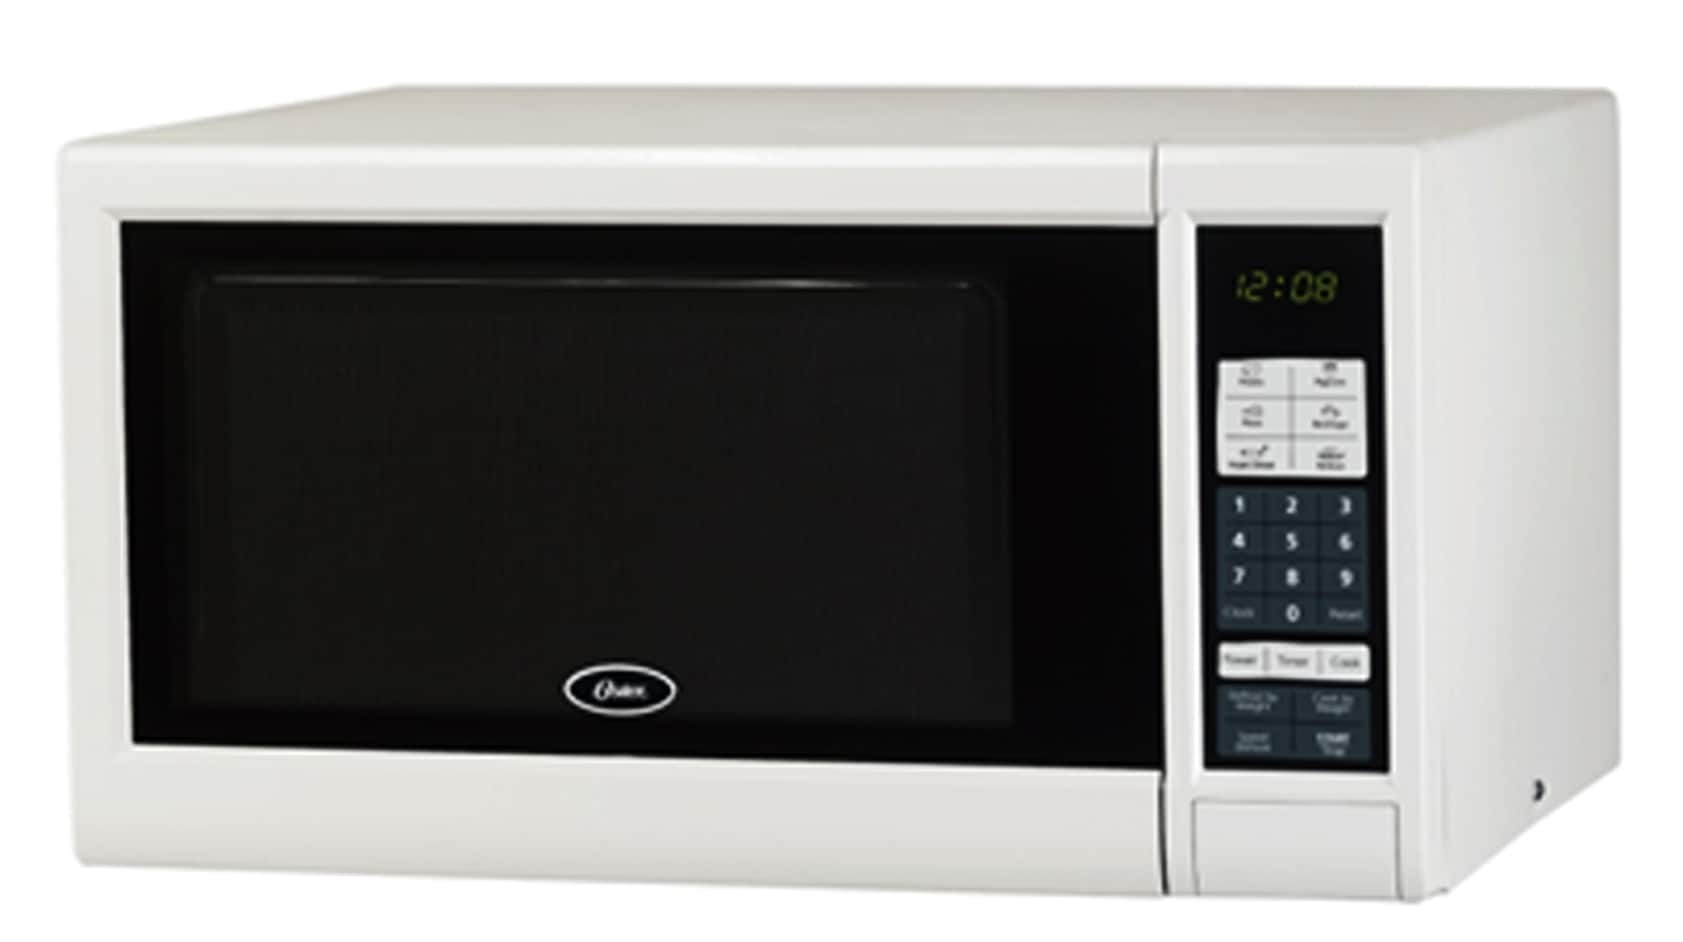 Oster 1.1 Cubic Feet White Digital Microwave Oven